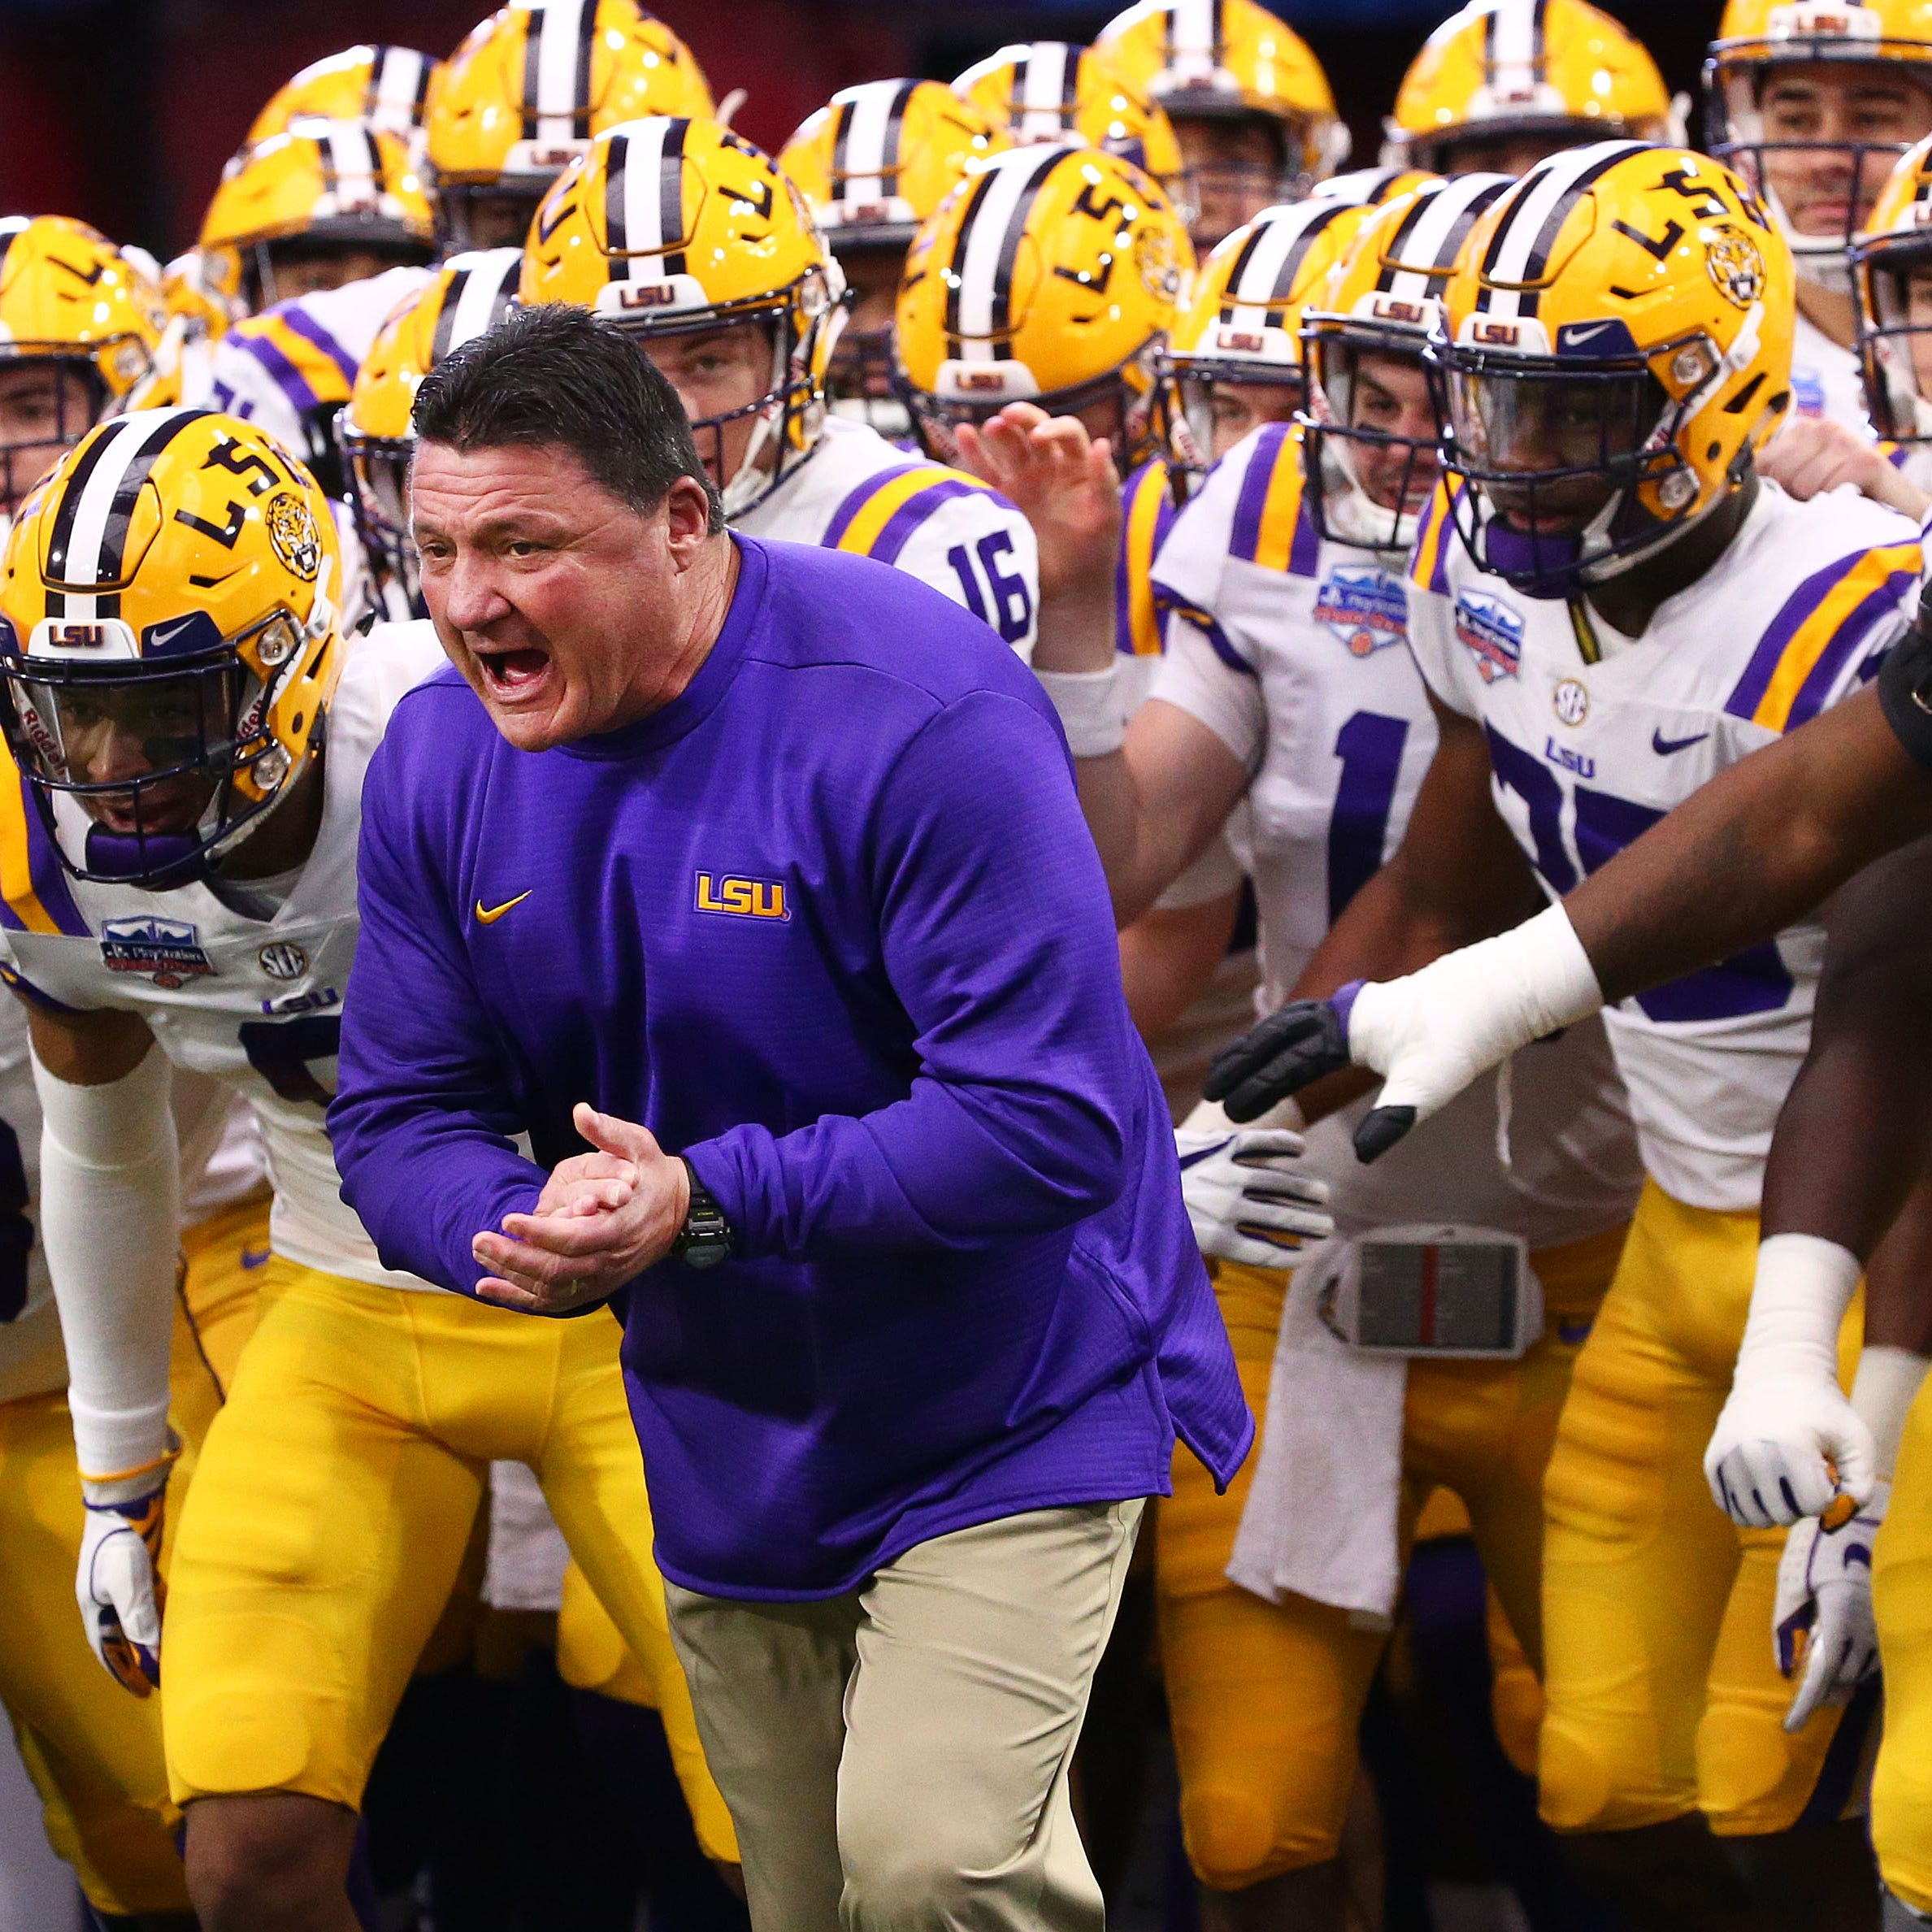 If LSU draft history repeats, look for 2021 national title, top draft classes in 2022, '23